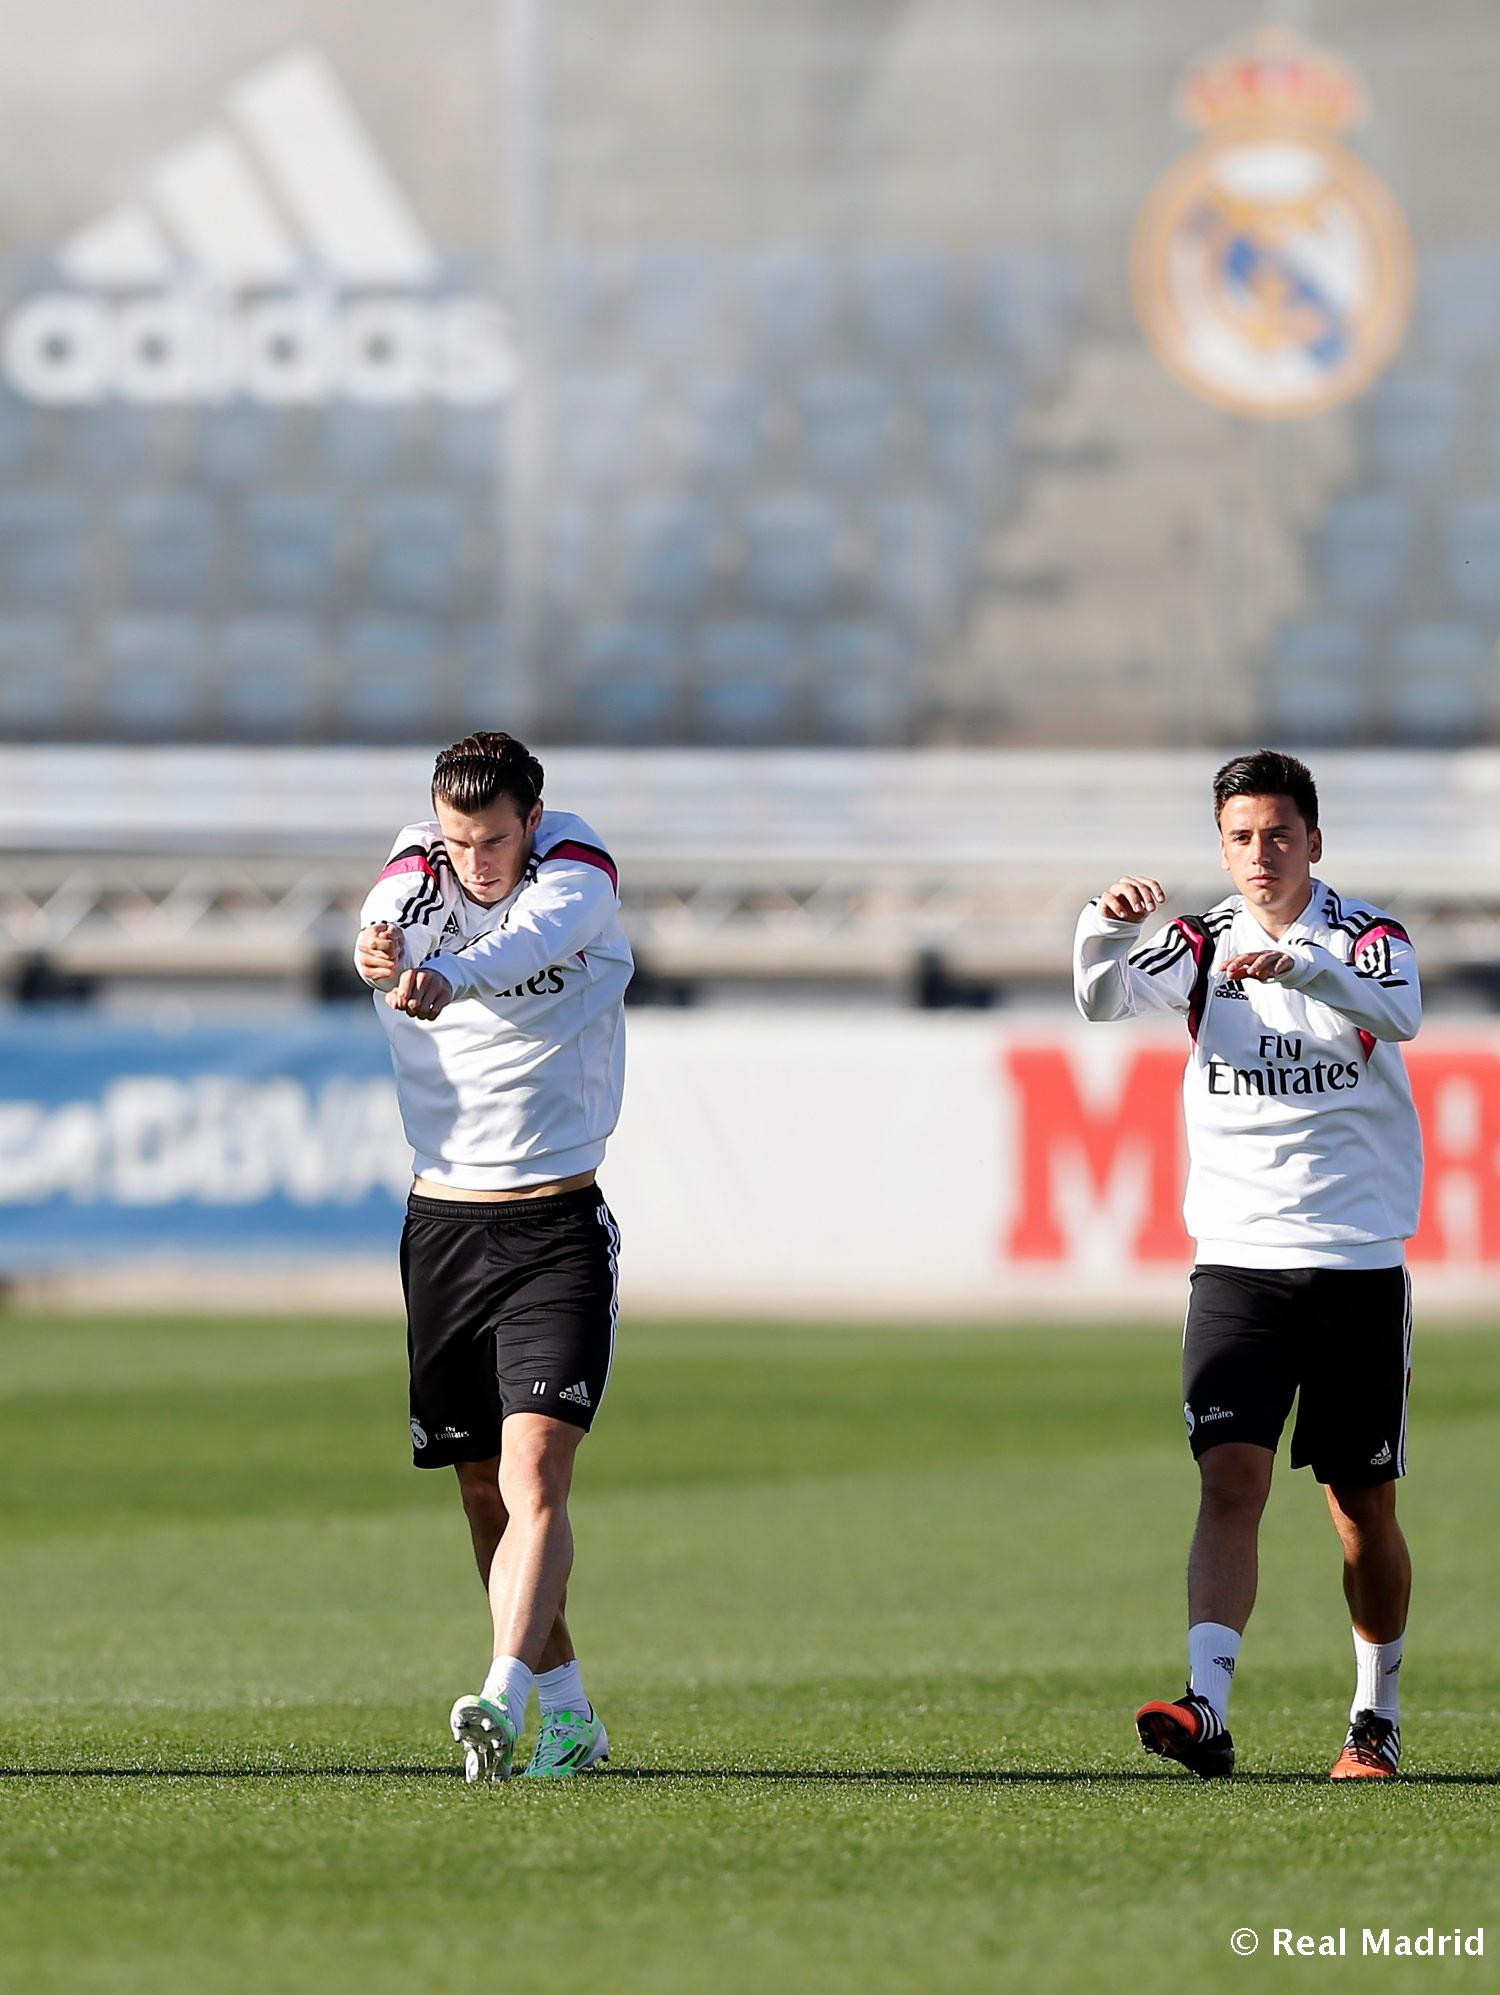 Real Madrid - Entrenamiento del Real Madrid - 01-12-2014